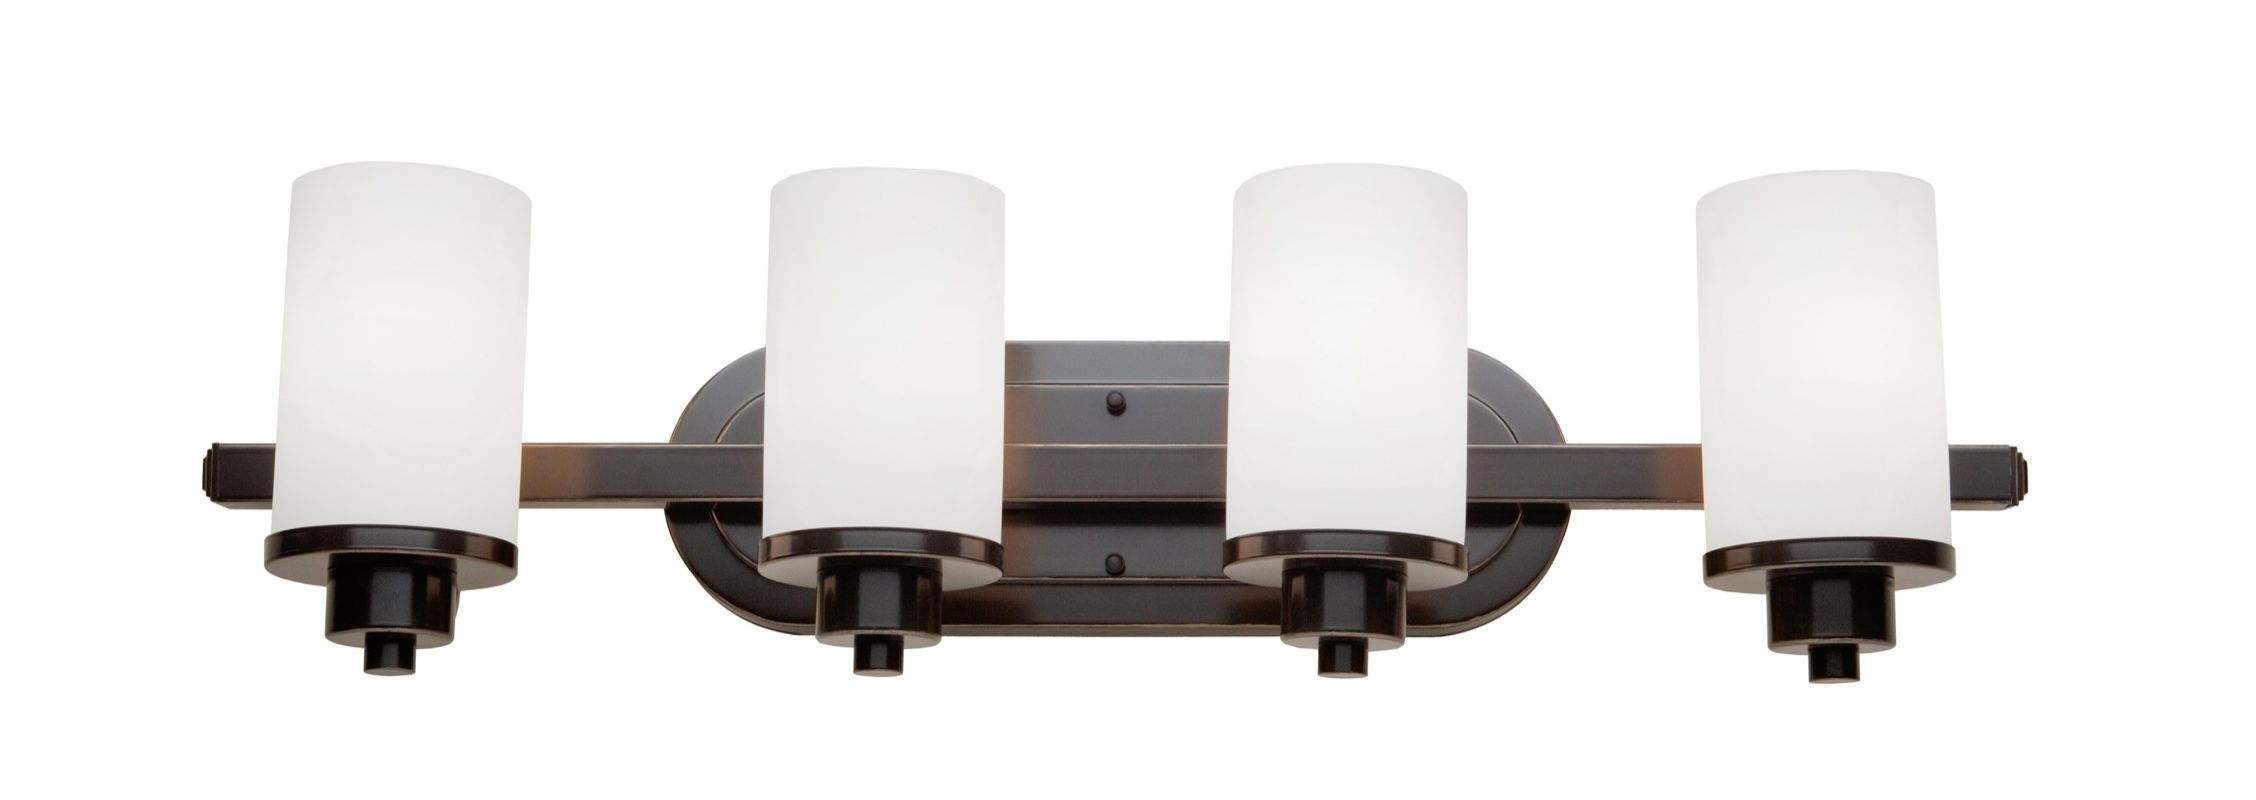 Vanity Lights Cyber Monday : LightingShowPlace.com AC1304WH in Oil Rubbed Bronze by Artcraft Lighting